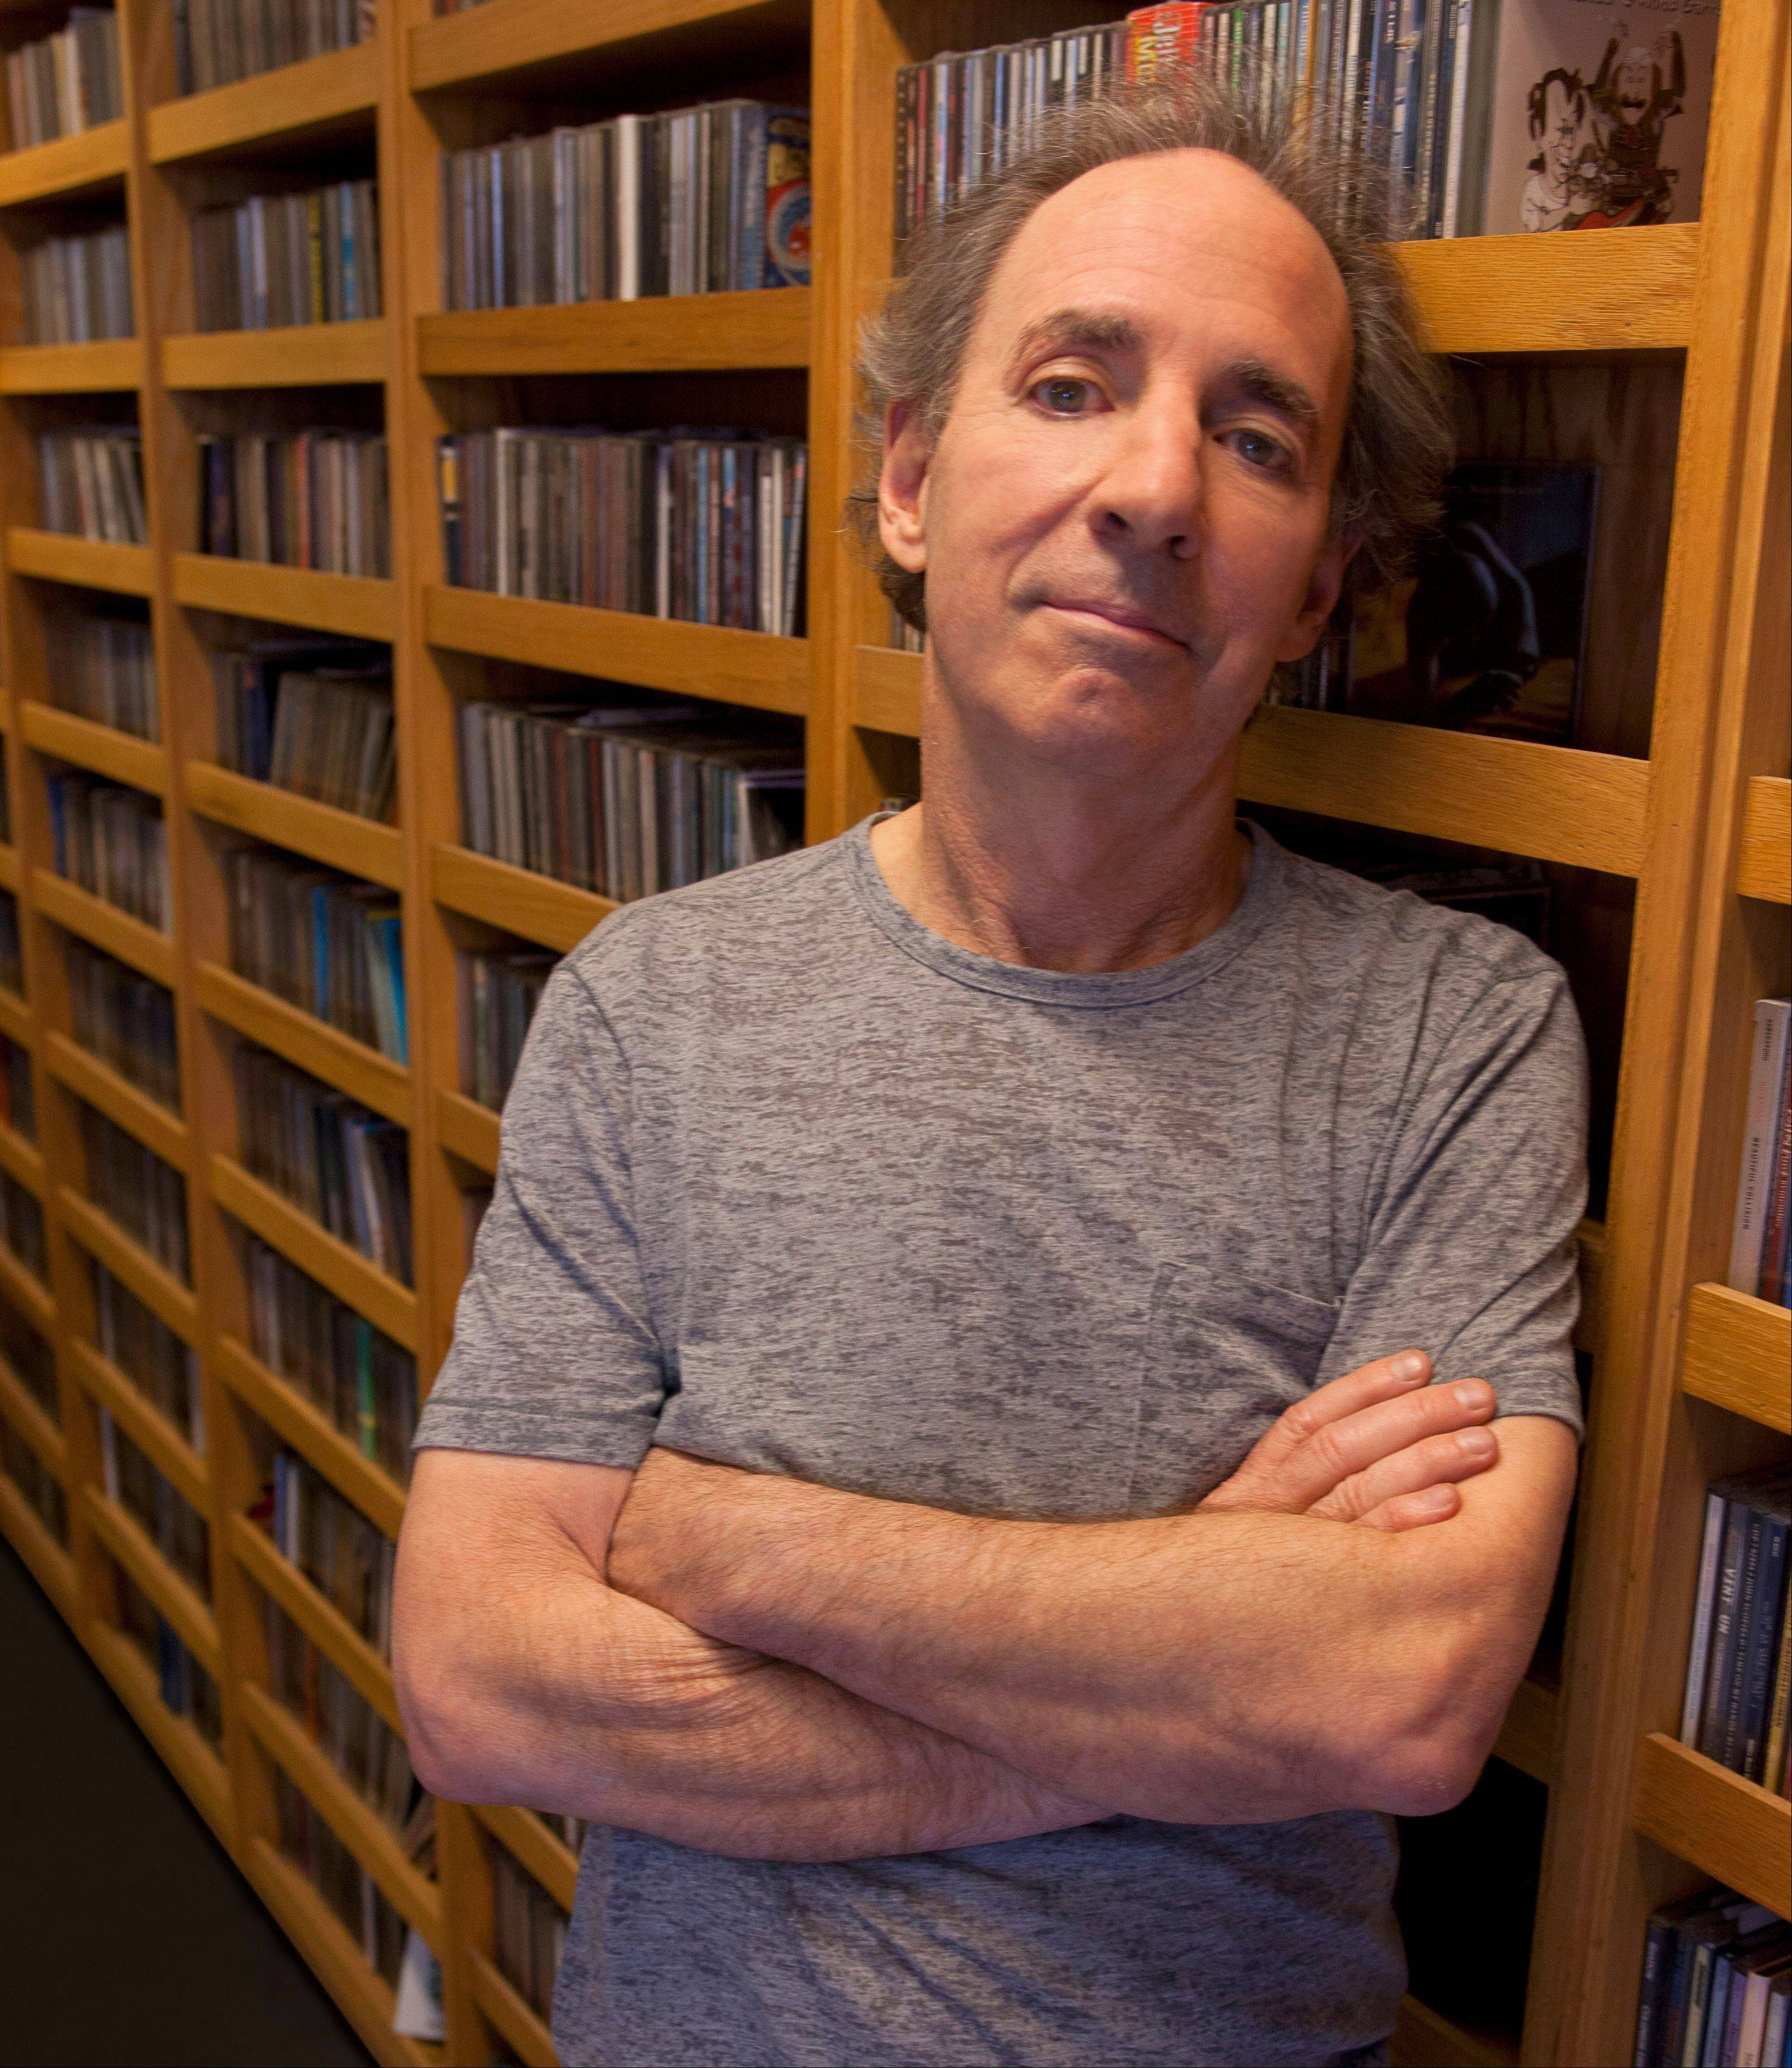 December 2013 marks Harry Shearer�s 30th year as producer, host, writer, aggregator, music director and one-man repertory company of �Le Show.�